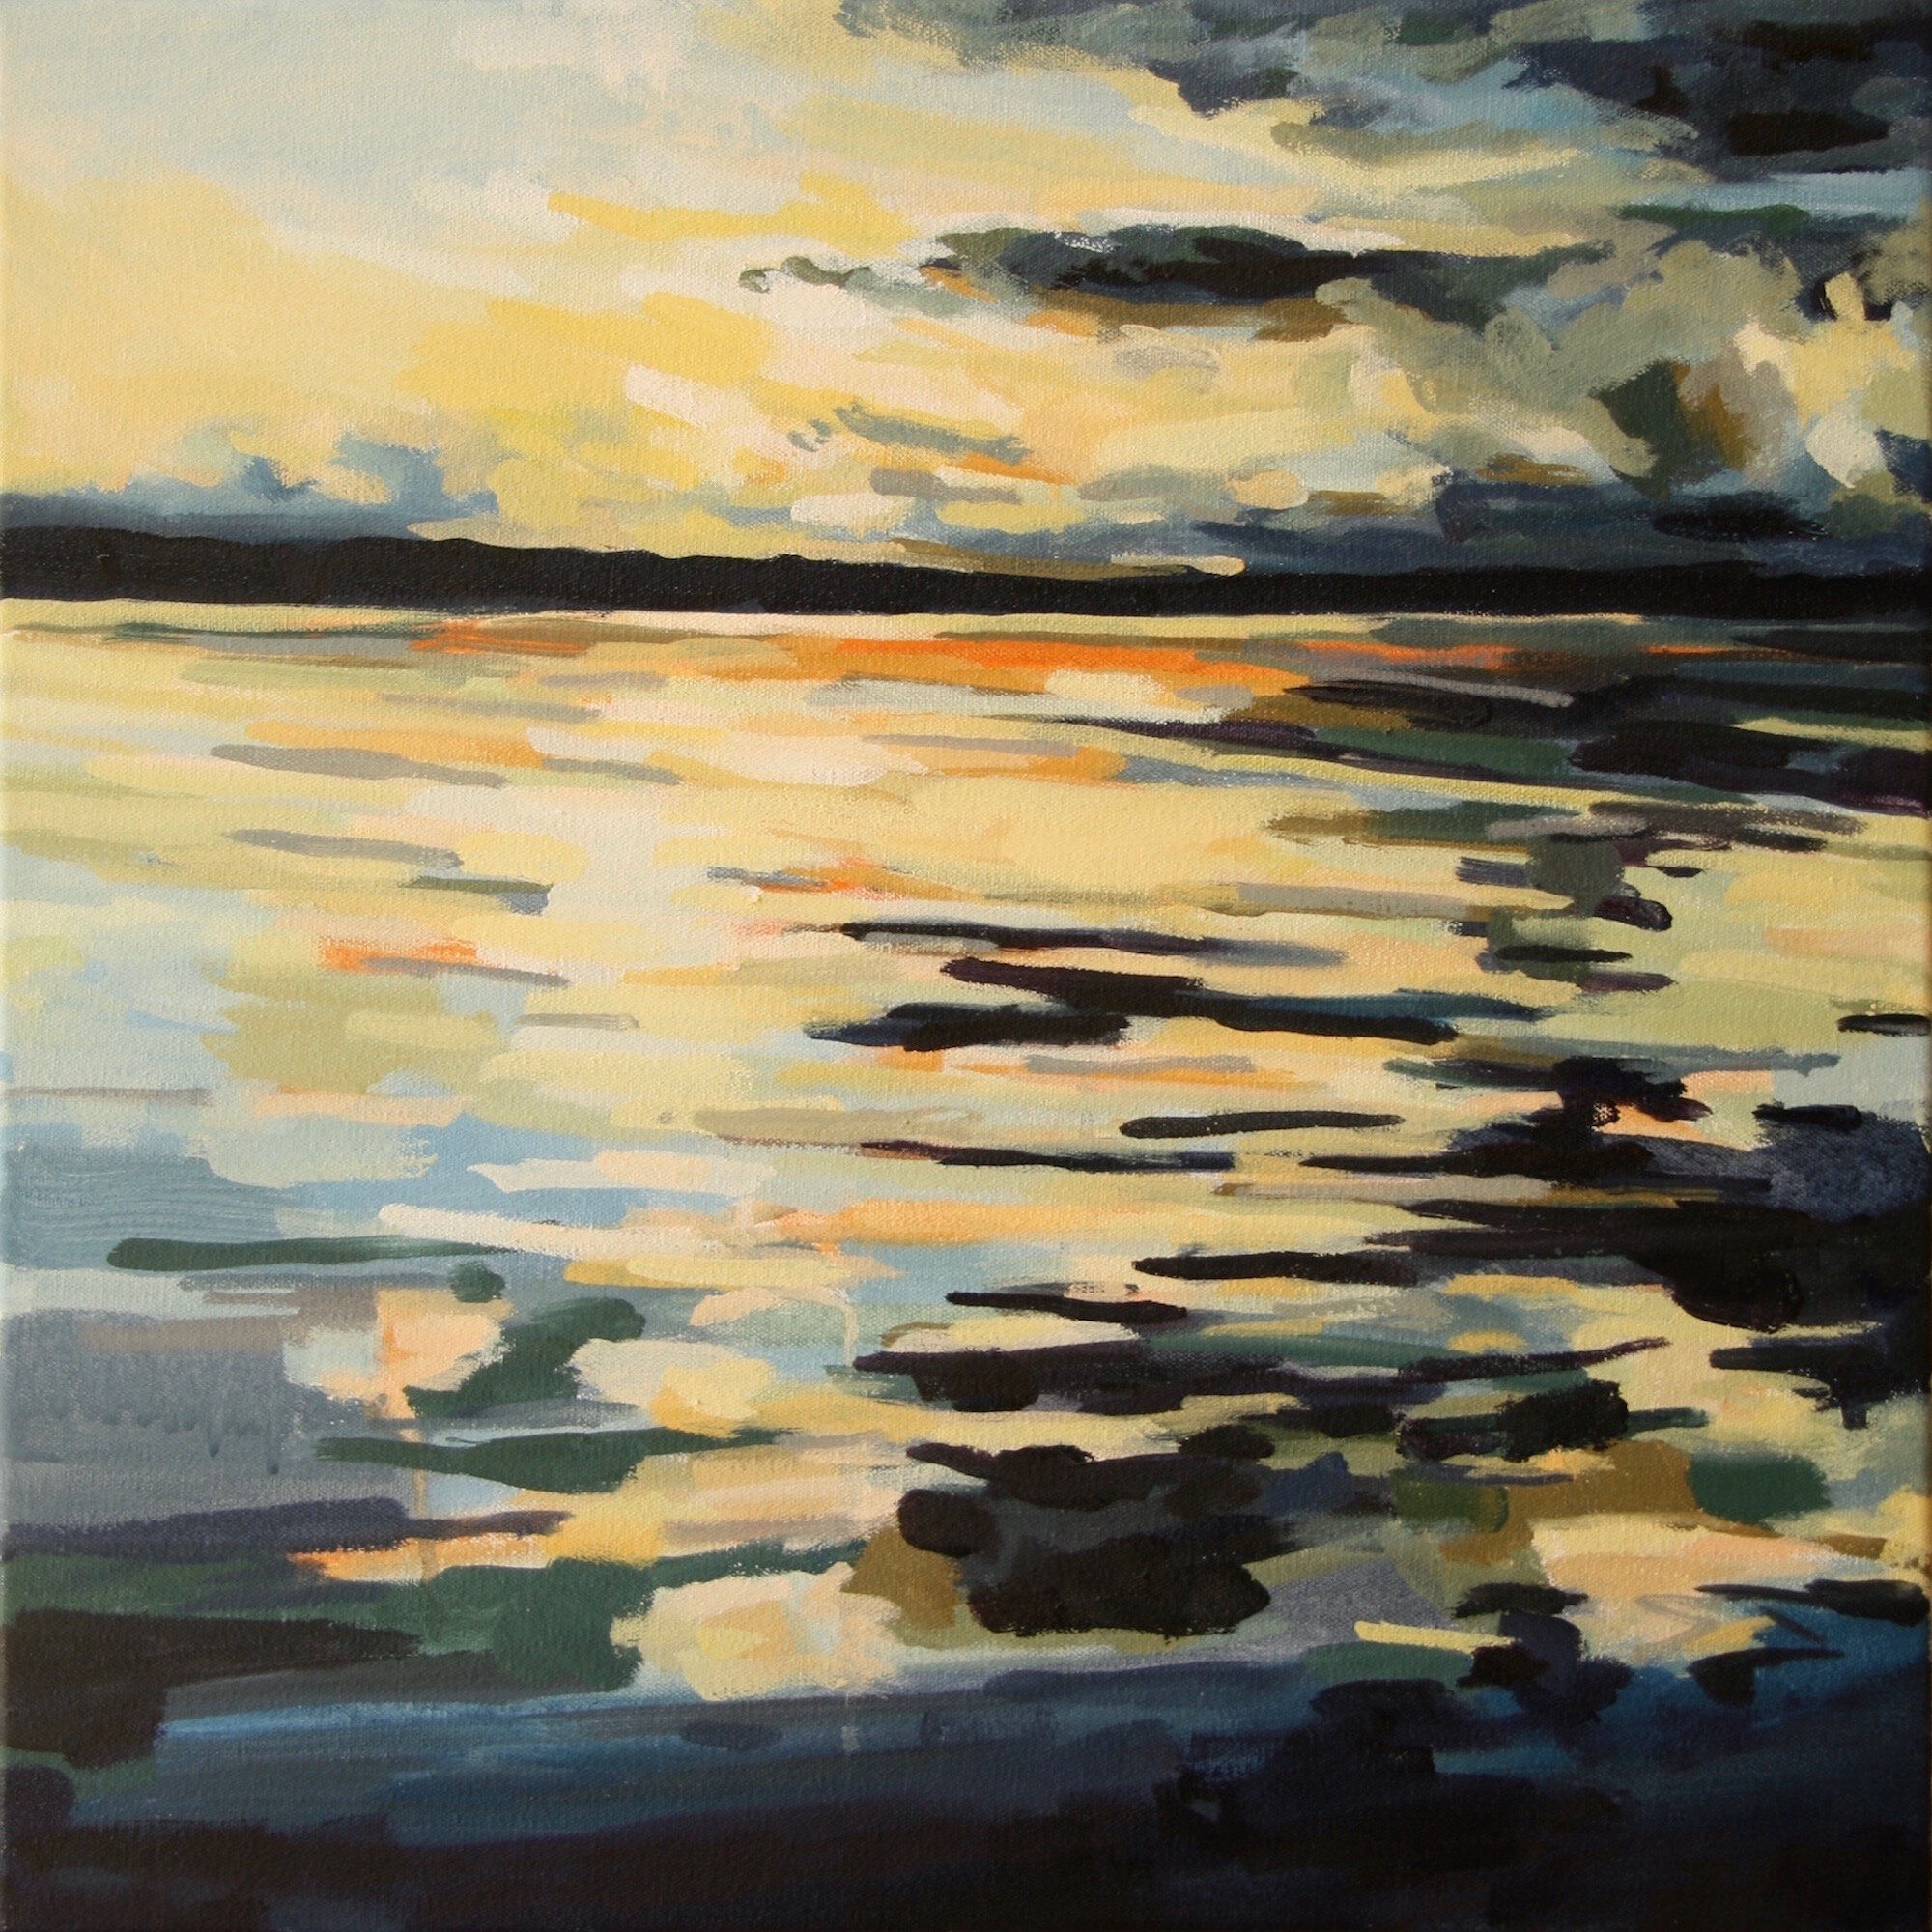 """'Mirrored Sound'  2015  20"""" x 20""""  water soluble oil on canvas  sold"""